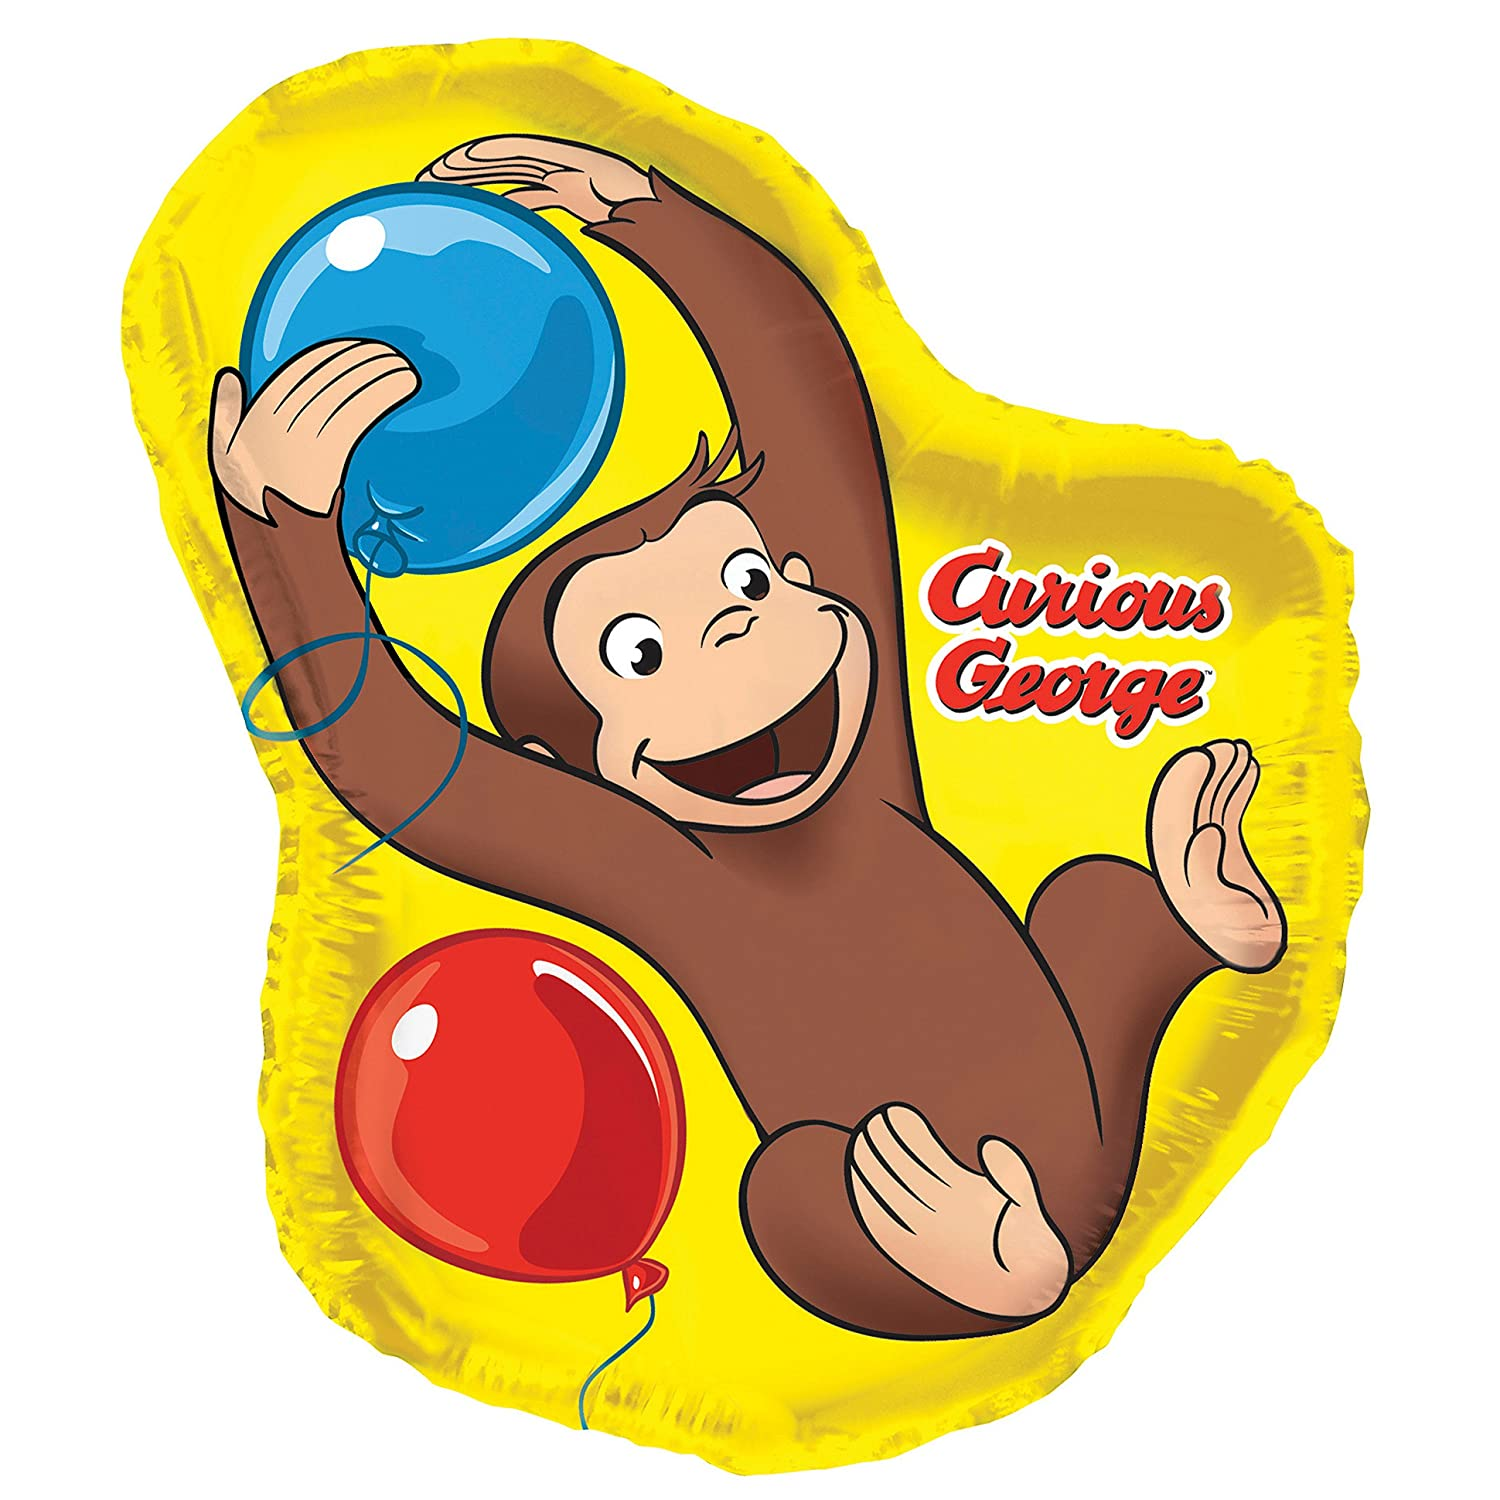 amazoncom 35 giant foil shaped curious george balloon toys games - Curious George Coloring Book In Bulk